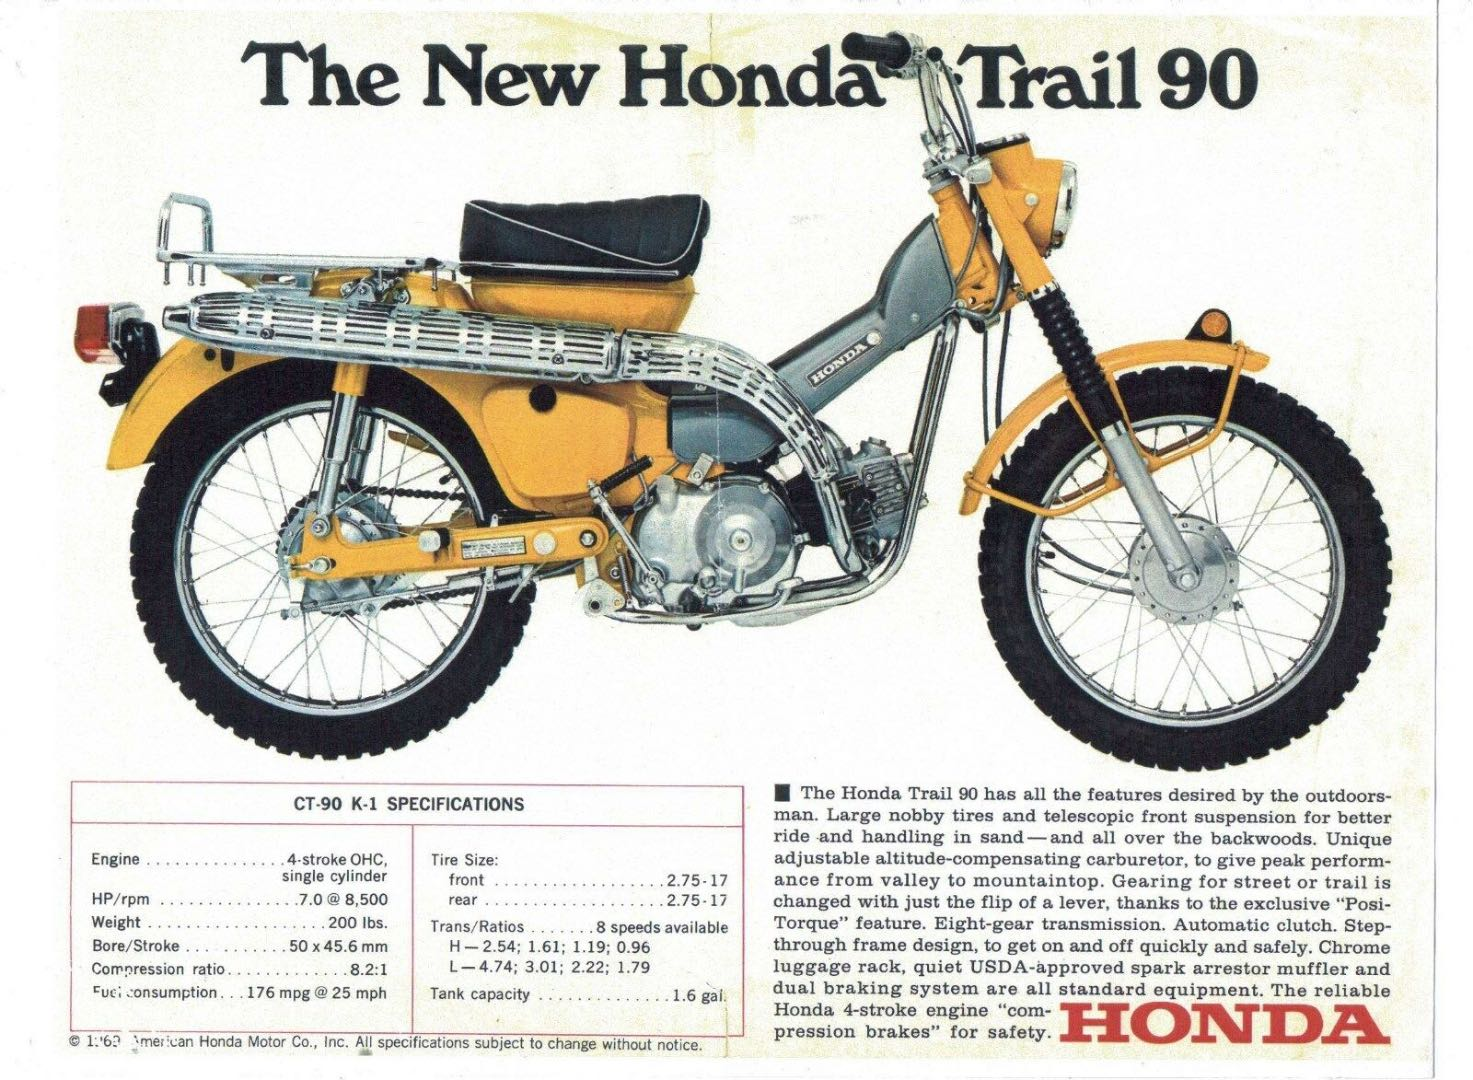 Honda Trail 90: A look Back at the First True Adventure Bike